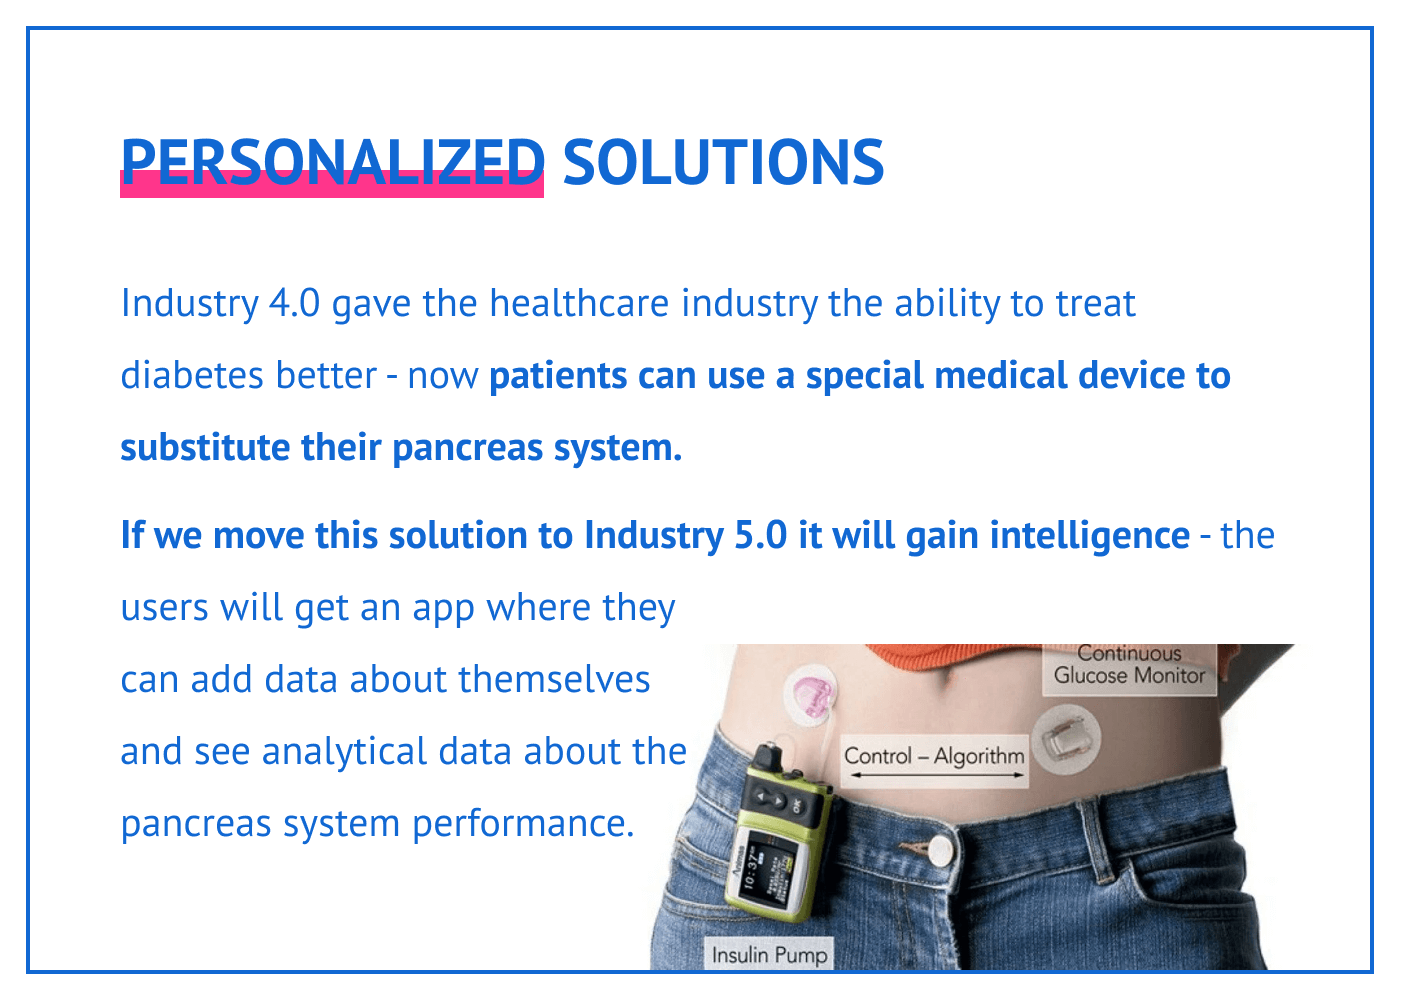 Personalized solutions with Industry 5.0.